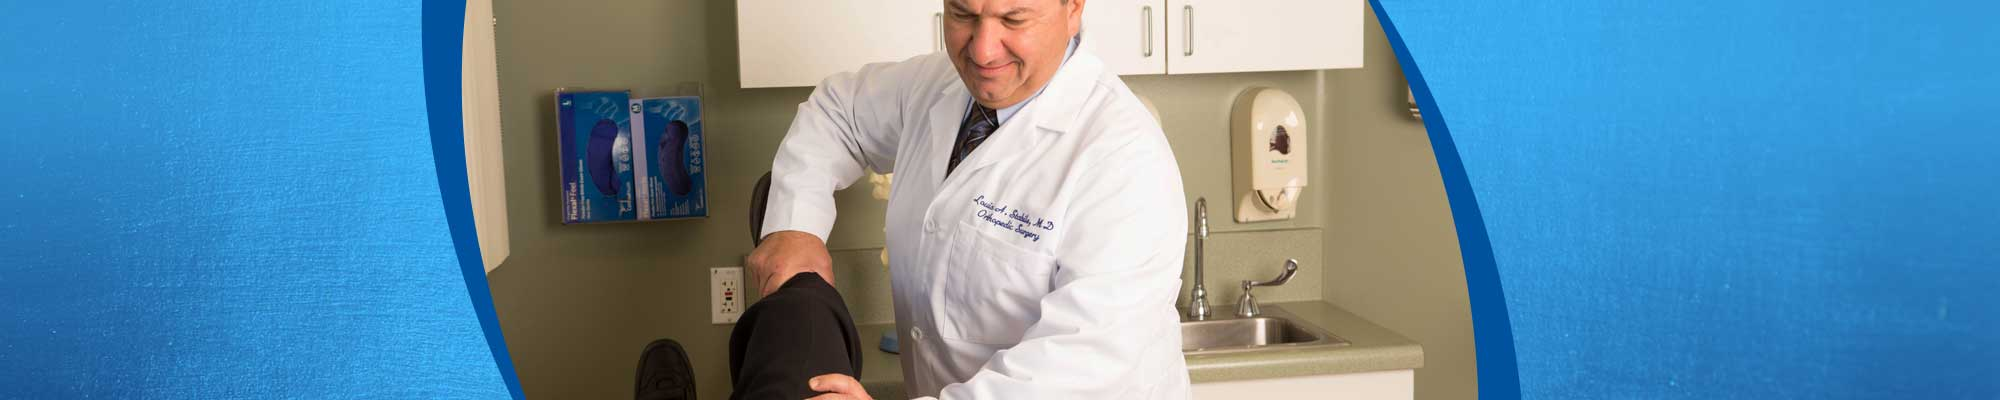 A doctor assessing a patient's knee.